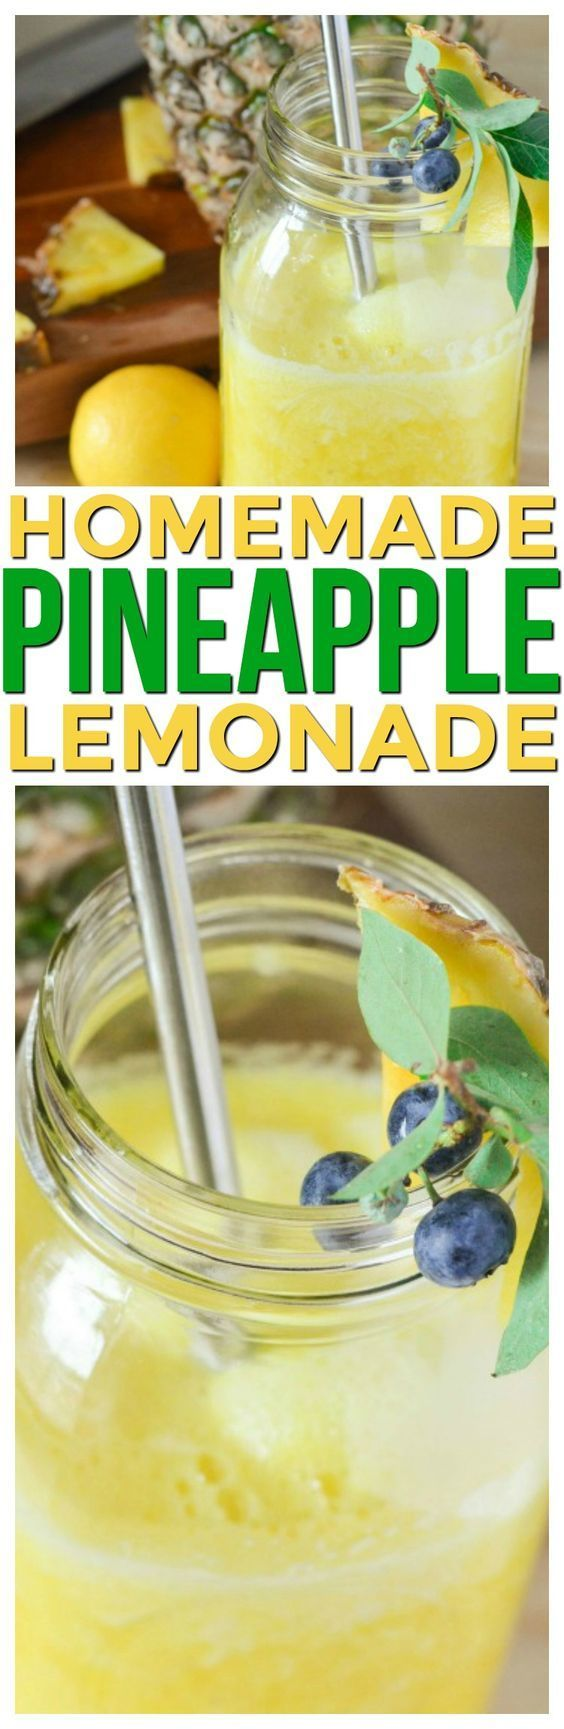 This frosty Pineapple Lemonade Recipe Homemade is perfection! Make it if you need a refreshing drink or homemade drink recipes nonalcoholic for kids it's a healthy summer beverage. via @KnowYourProduce Come and see our new website at bakedcomfortfood.com!